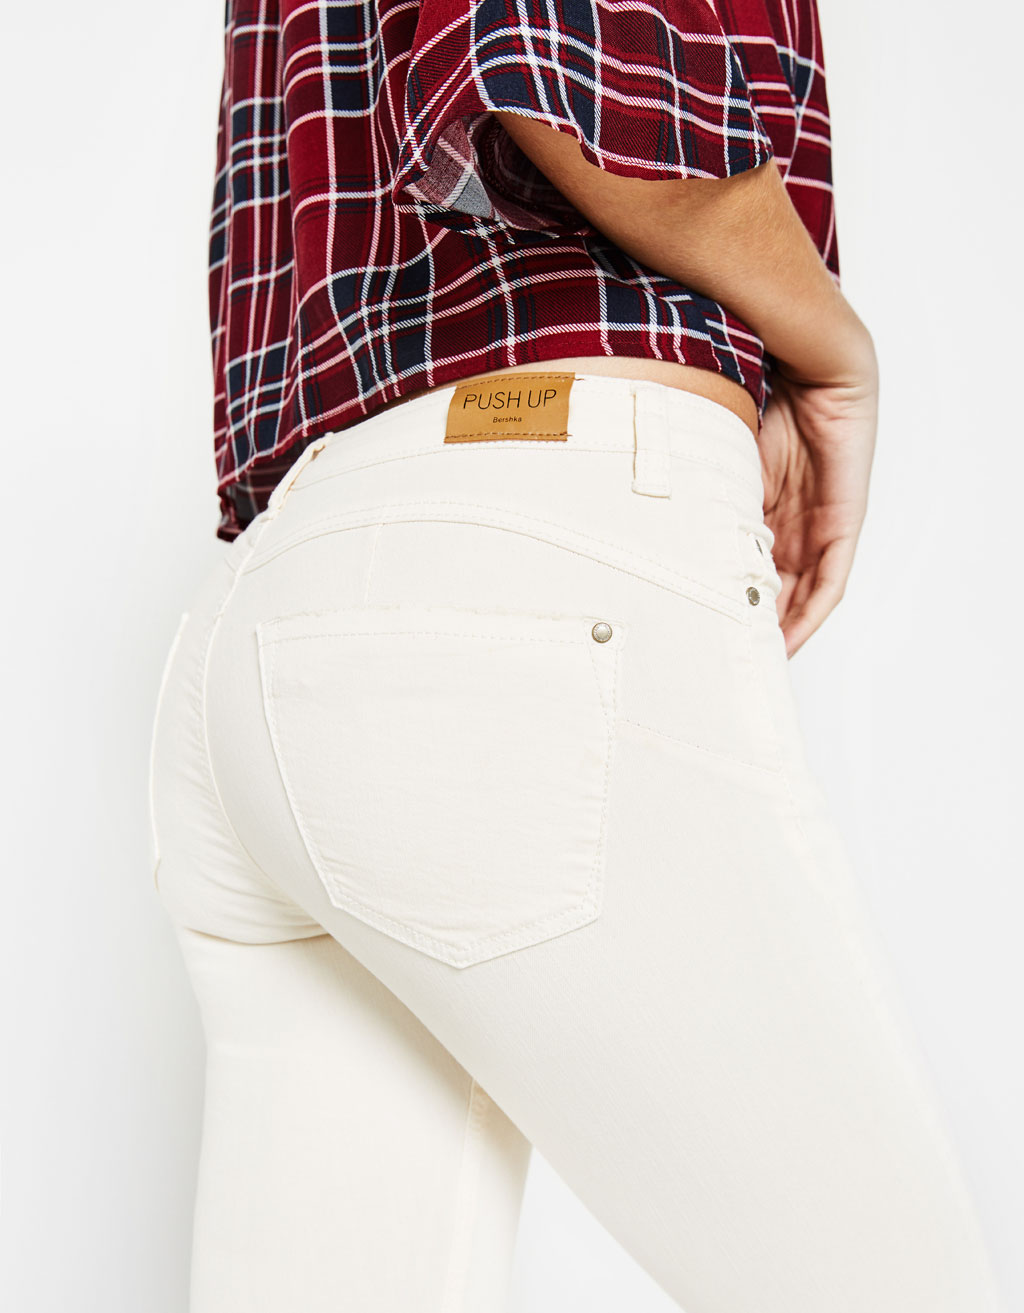 5-pocket push-up trousers